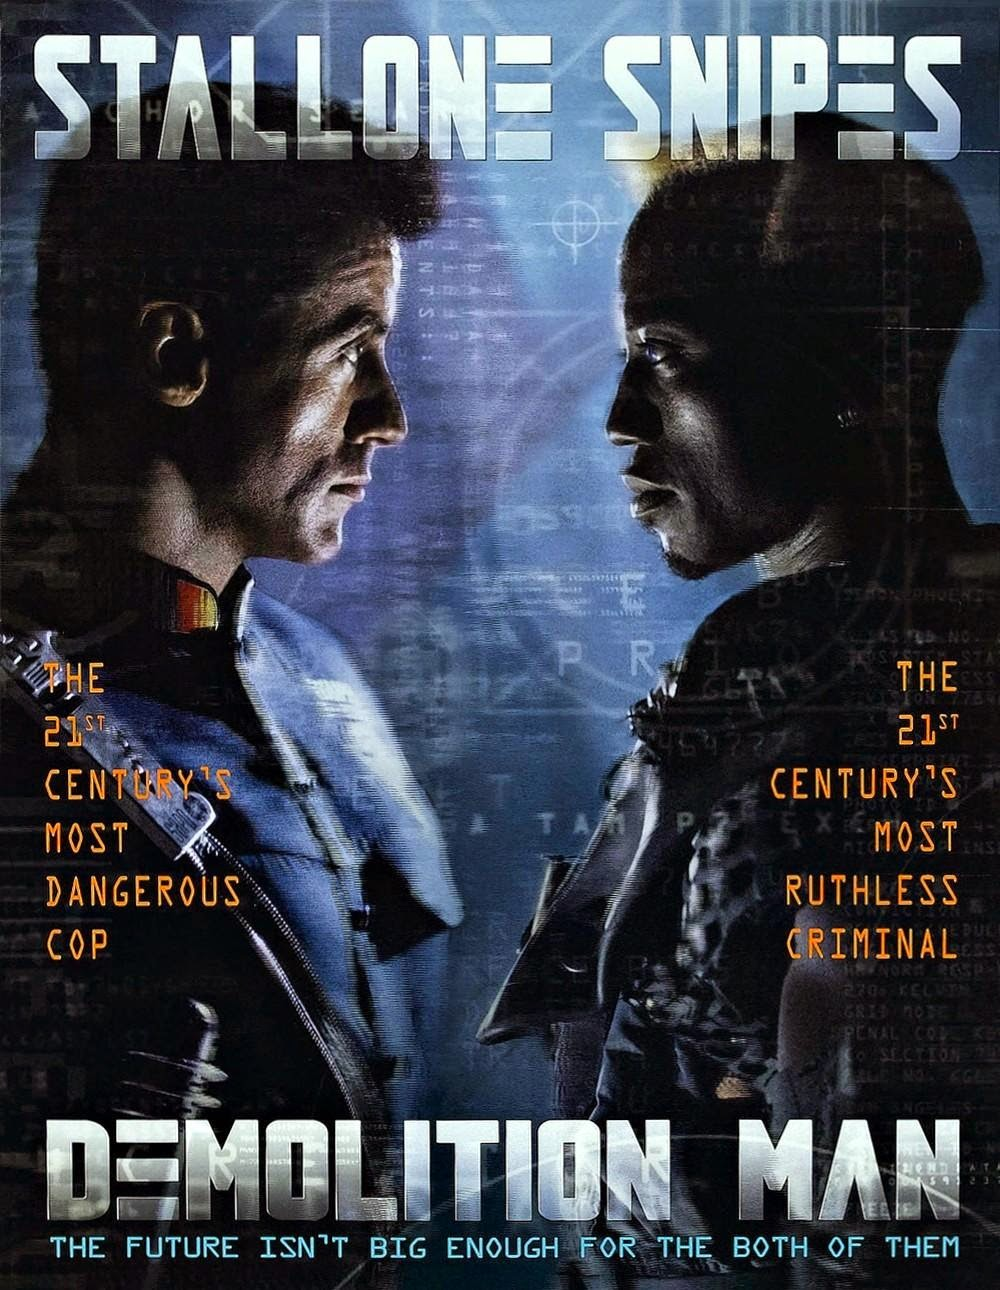 Demolition Man (Released in 1993) - A corny futuristic movie starring Sylvester Stallone, Wesley Snipes, Sandra Bullock, Nigel Hawthorne